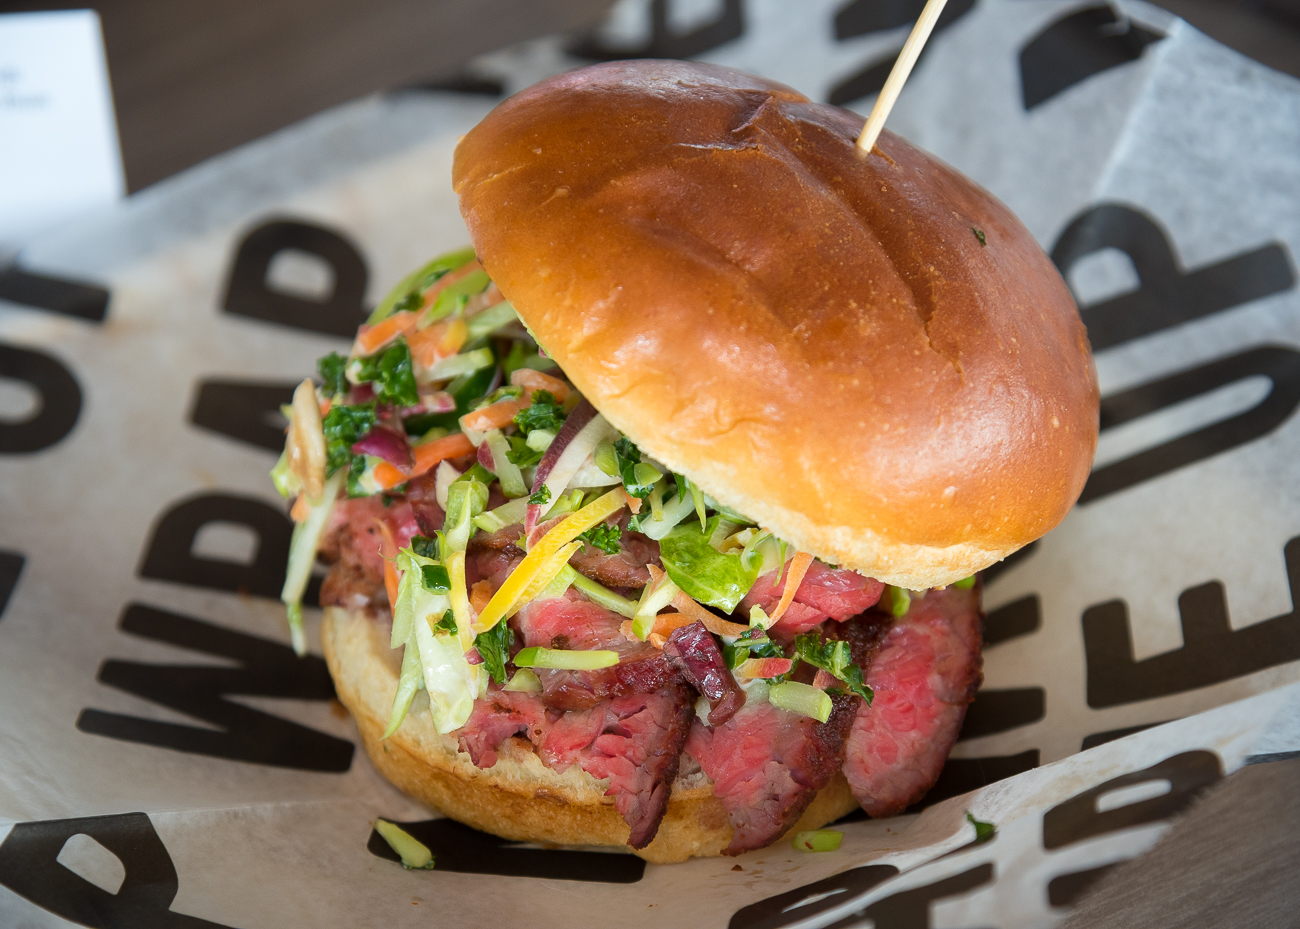 Smoked Tri-Tip: House-smoked sirloin topped with jalapeno slaw and served on a brioche bun (available at Mr. Red's Smokehouse—section 137) / Image: Phil Armstrong, Cincinnati Refined // Published: 3.21.19